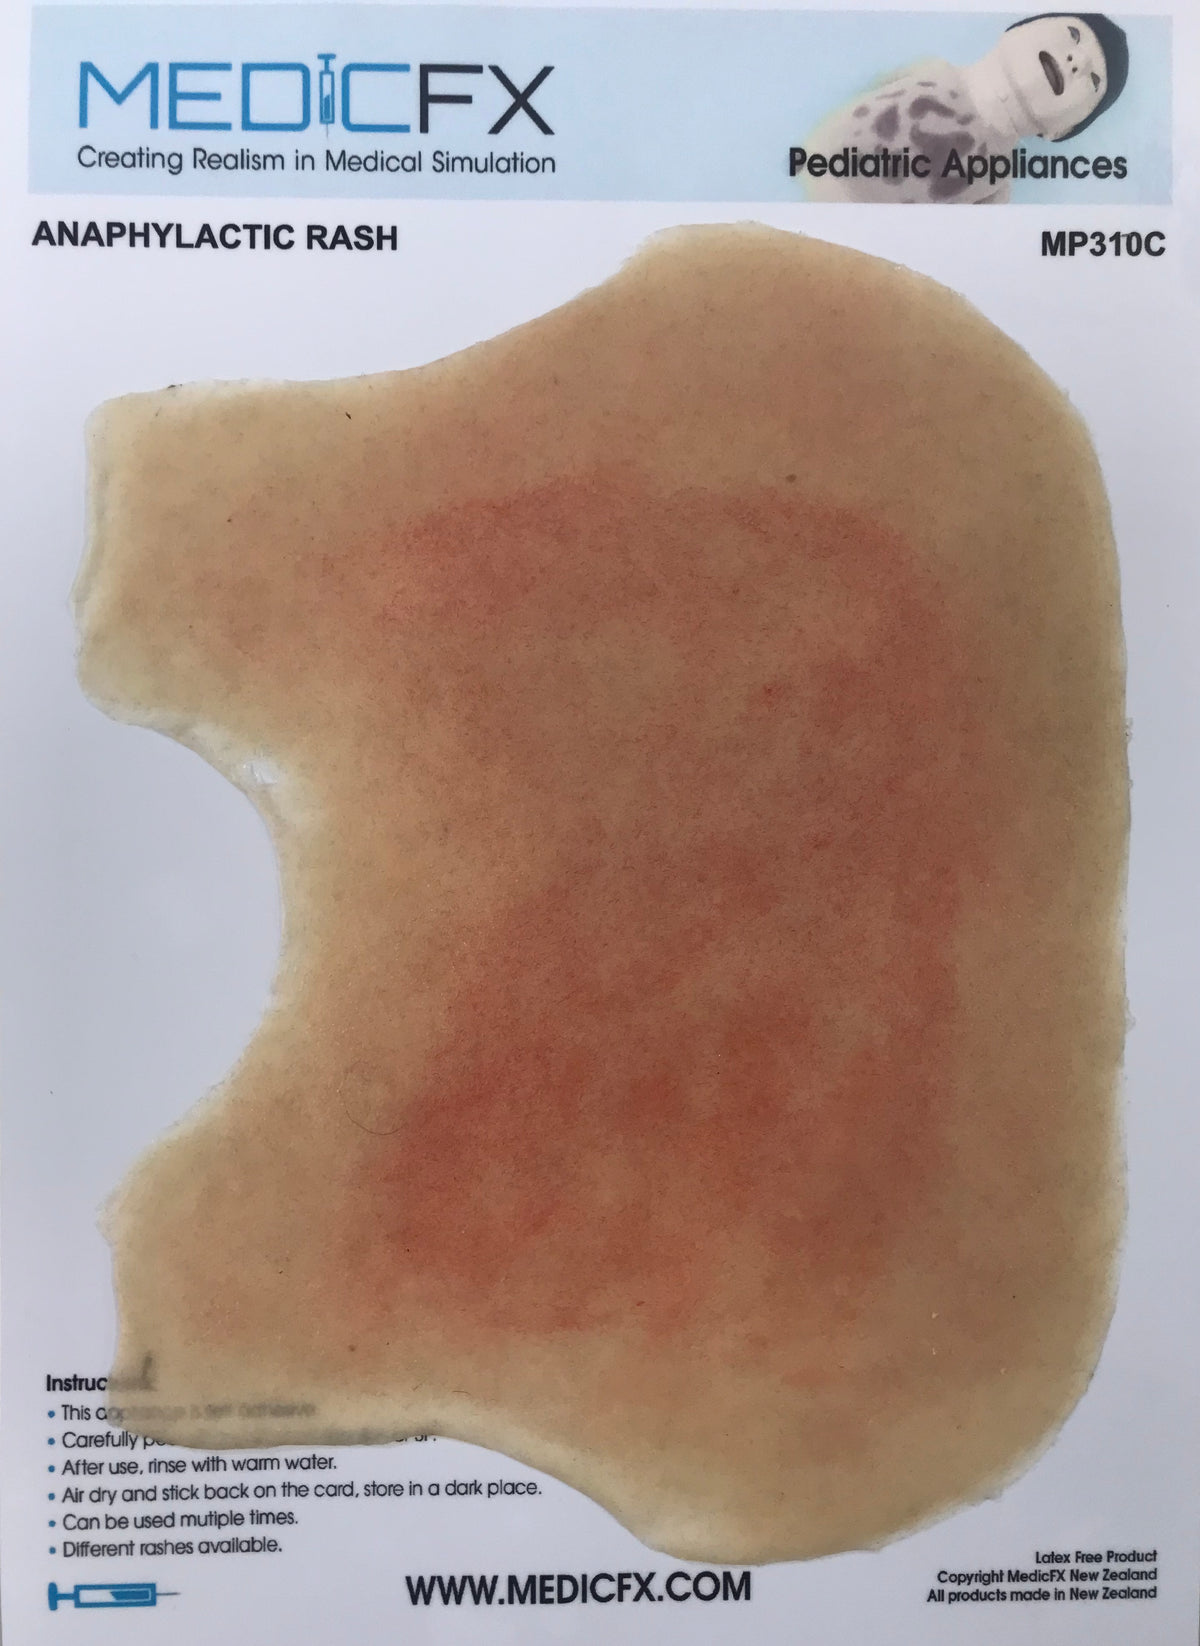 MP310 ANAPHYLACTIC RASH